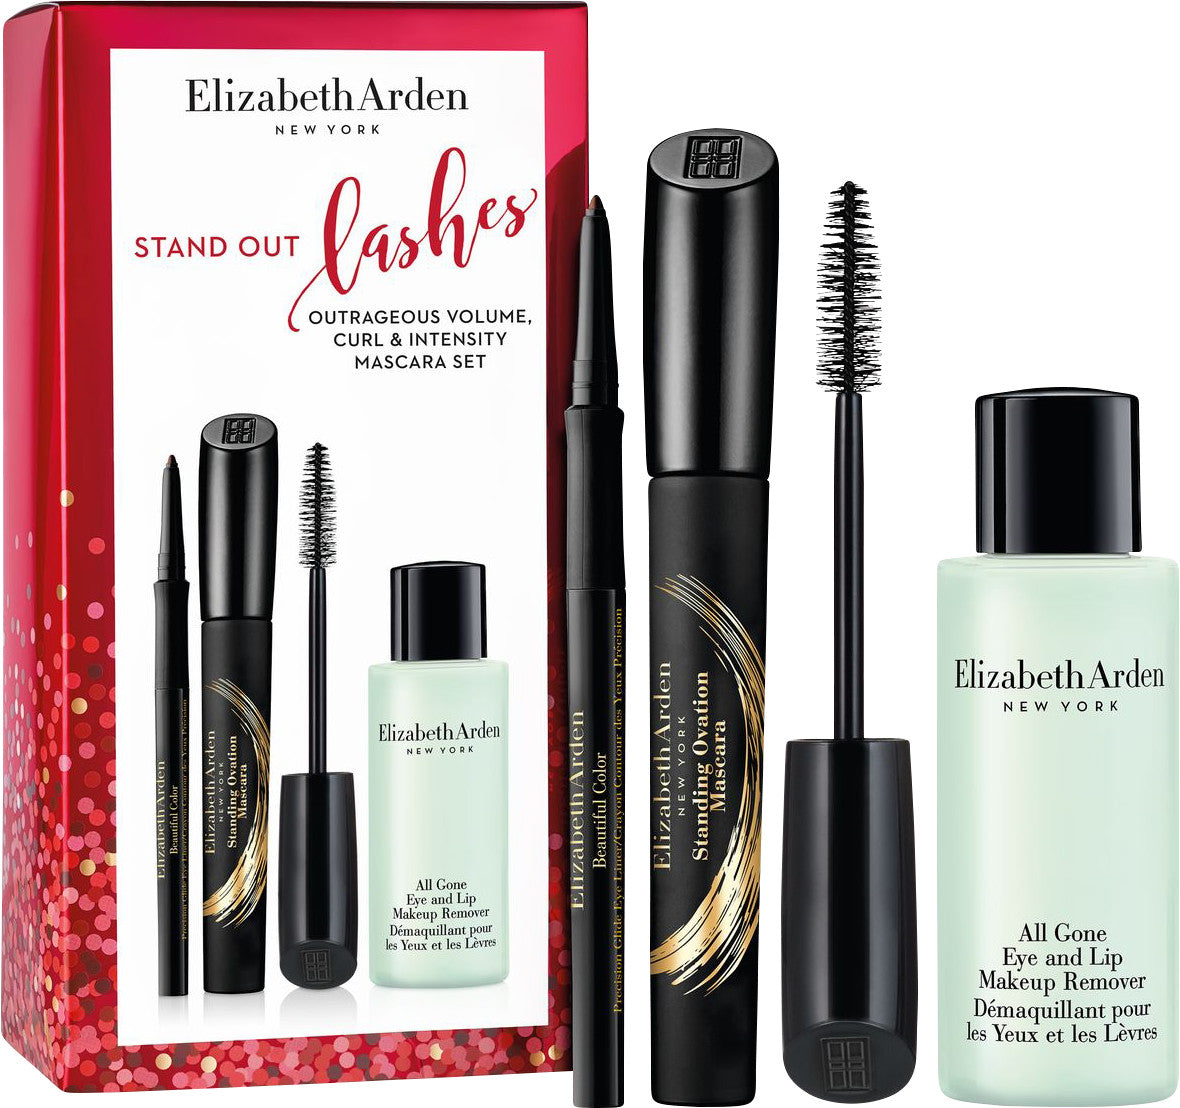 Elizabeth Arden Stand Out Lashes 3pc Set ($35 Value)